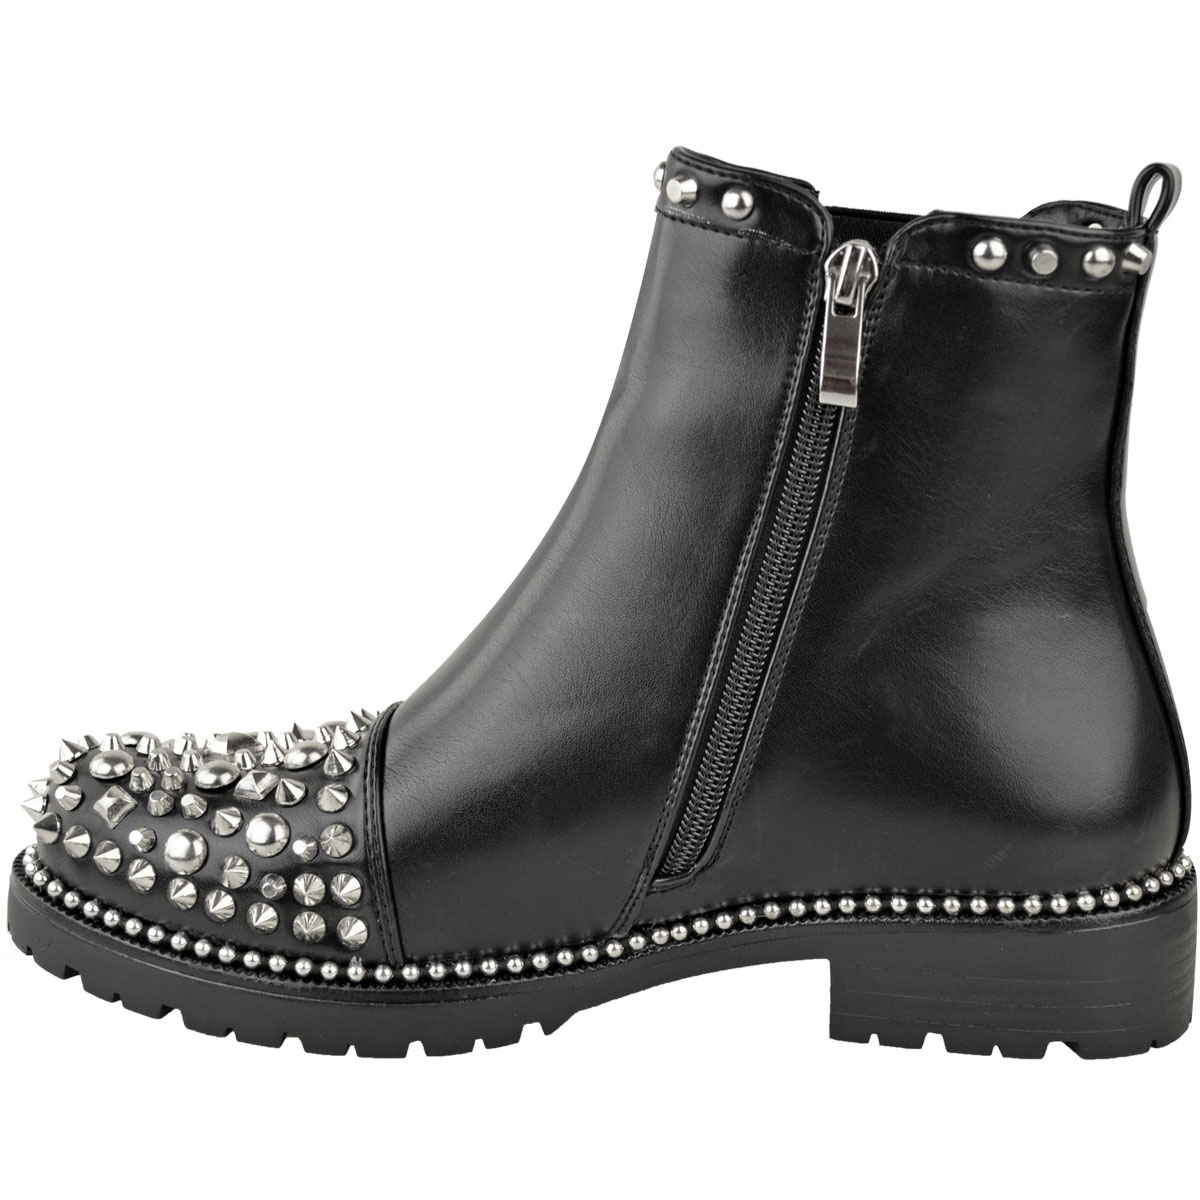 New-Womens-Ladies-Studded-Goth-Zip-Ankle-Boots-Gusset-Chelsea-Chunky-Punk-Size Indexbild 8